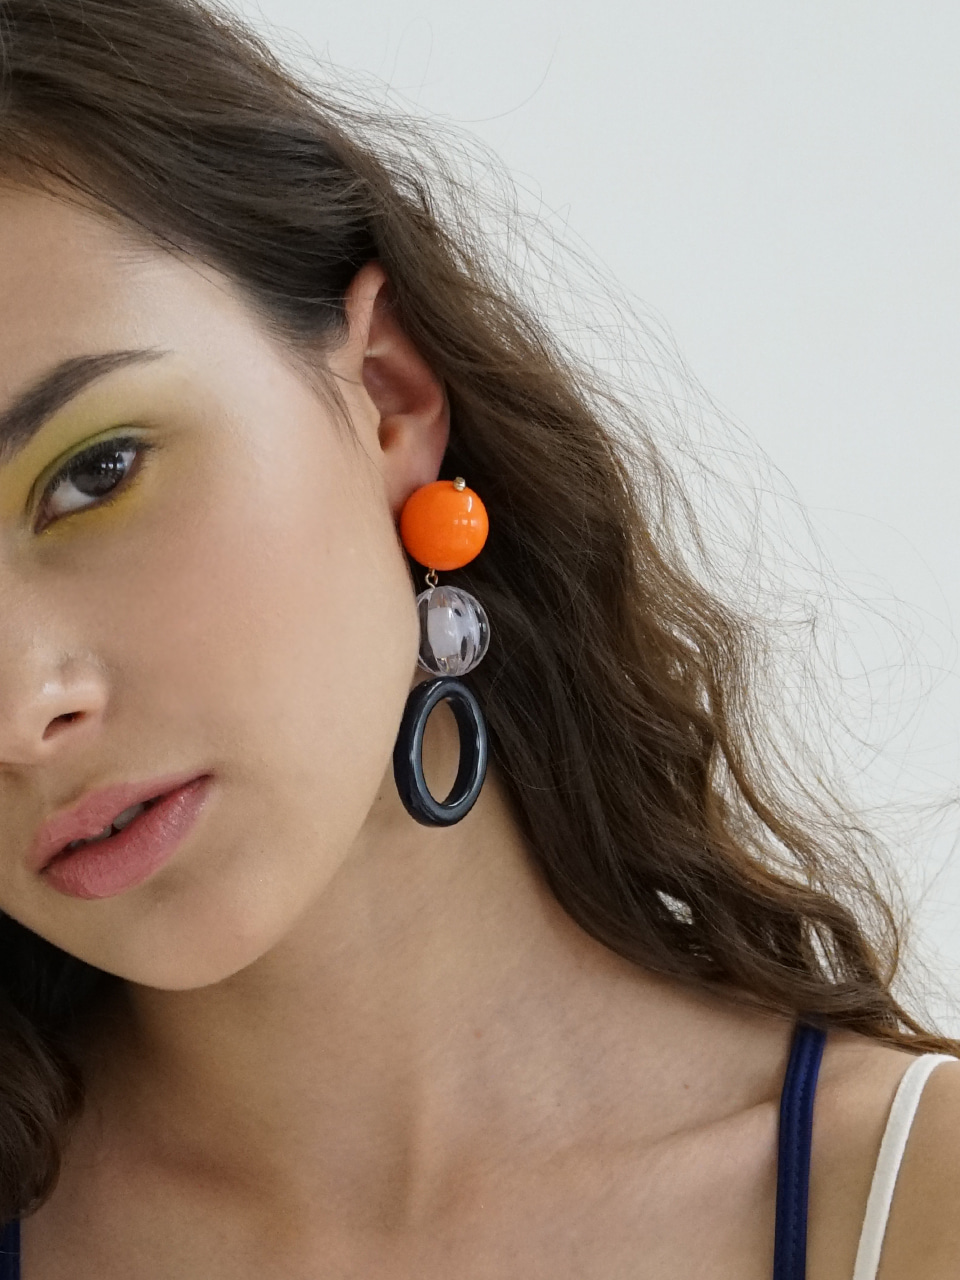 [SOLD OUT][FAVORITE MOOD X MARCIE] Ugly pumpkin earring